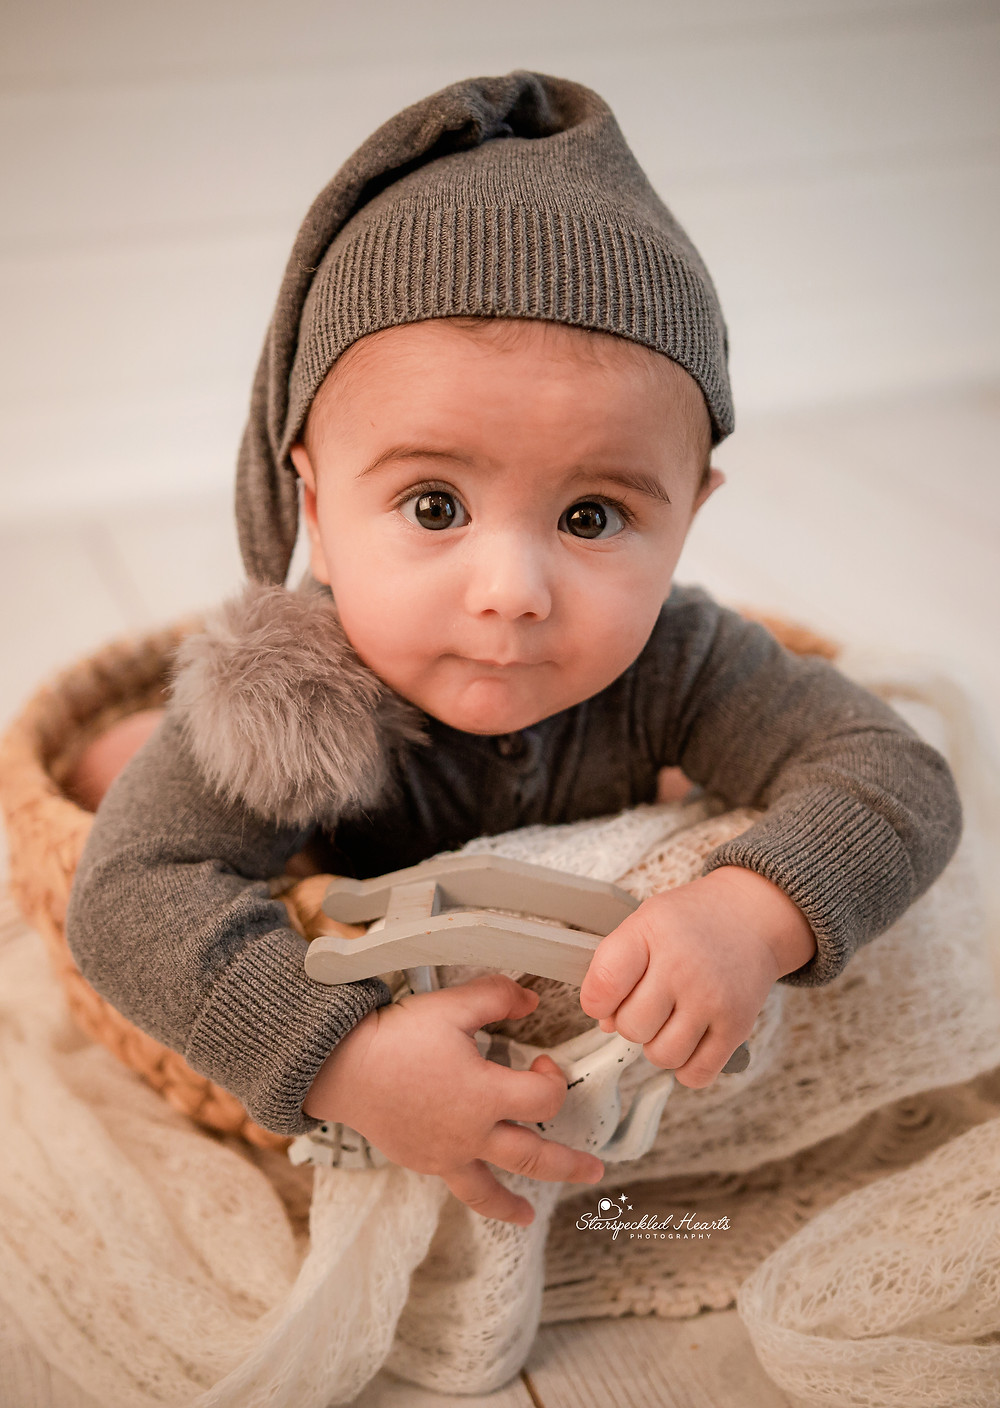 baby boy with big brown eyes wearing a grey ribbed romper suit with a matching sleepy cap for his baby photography session in Hampshire